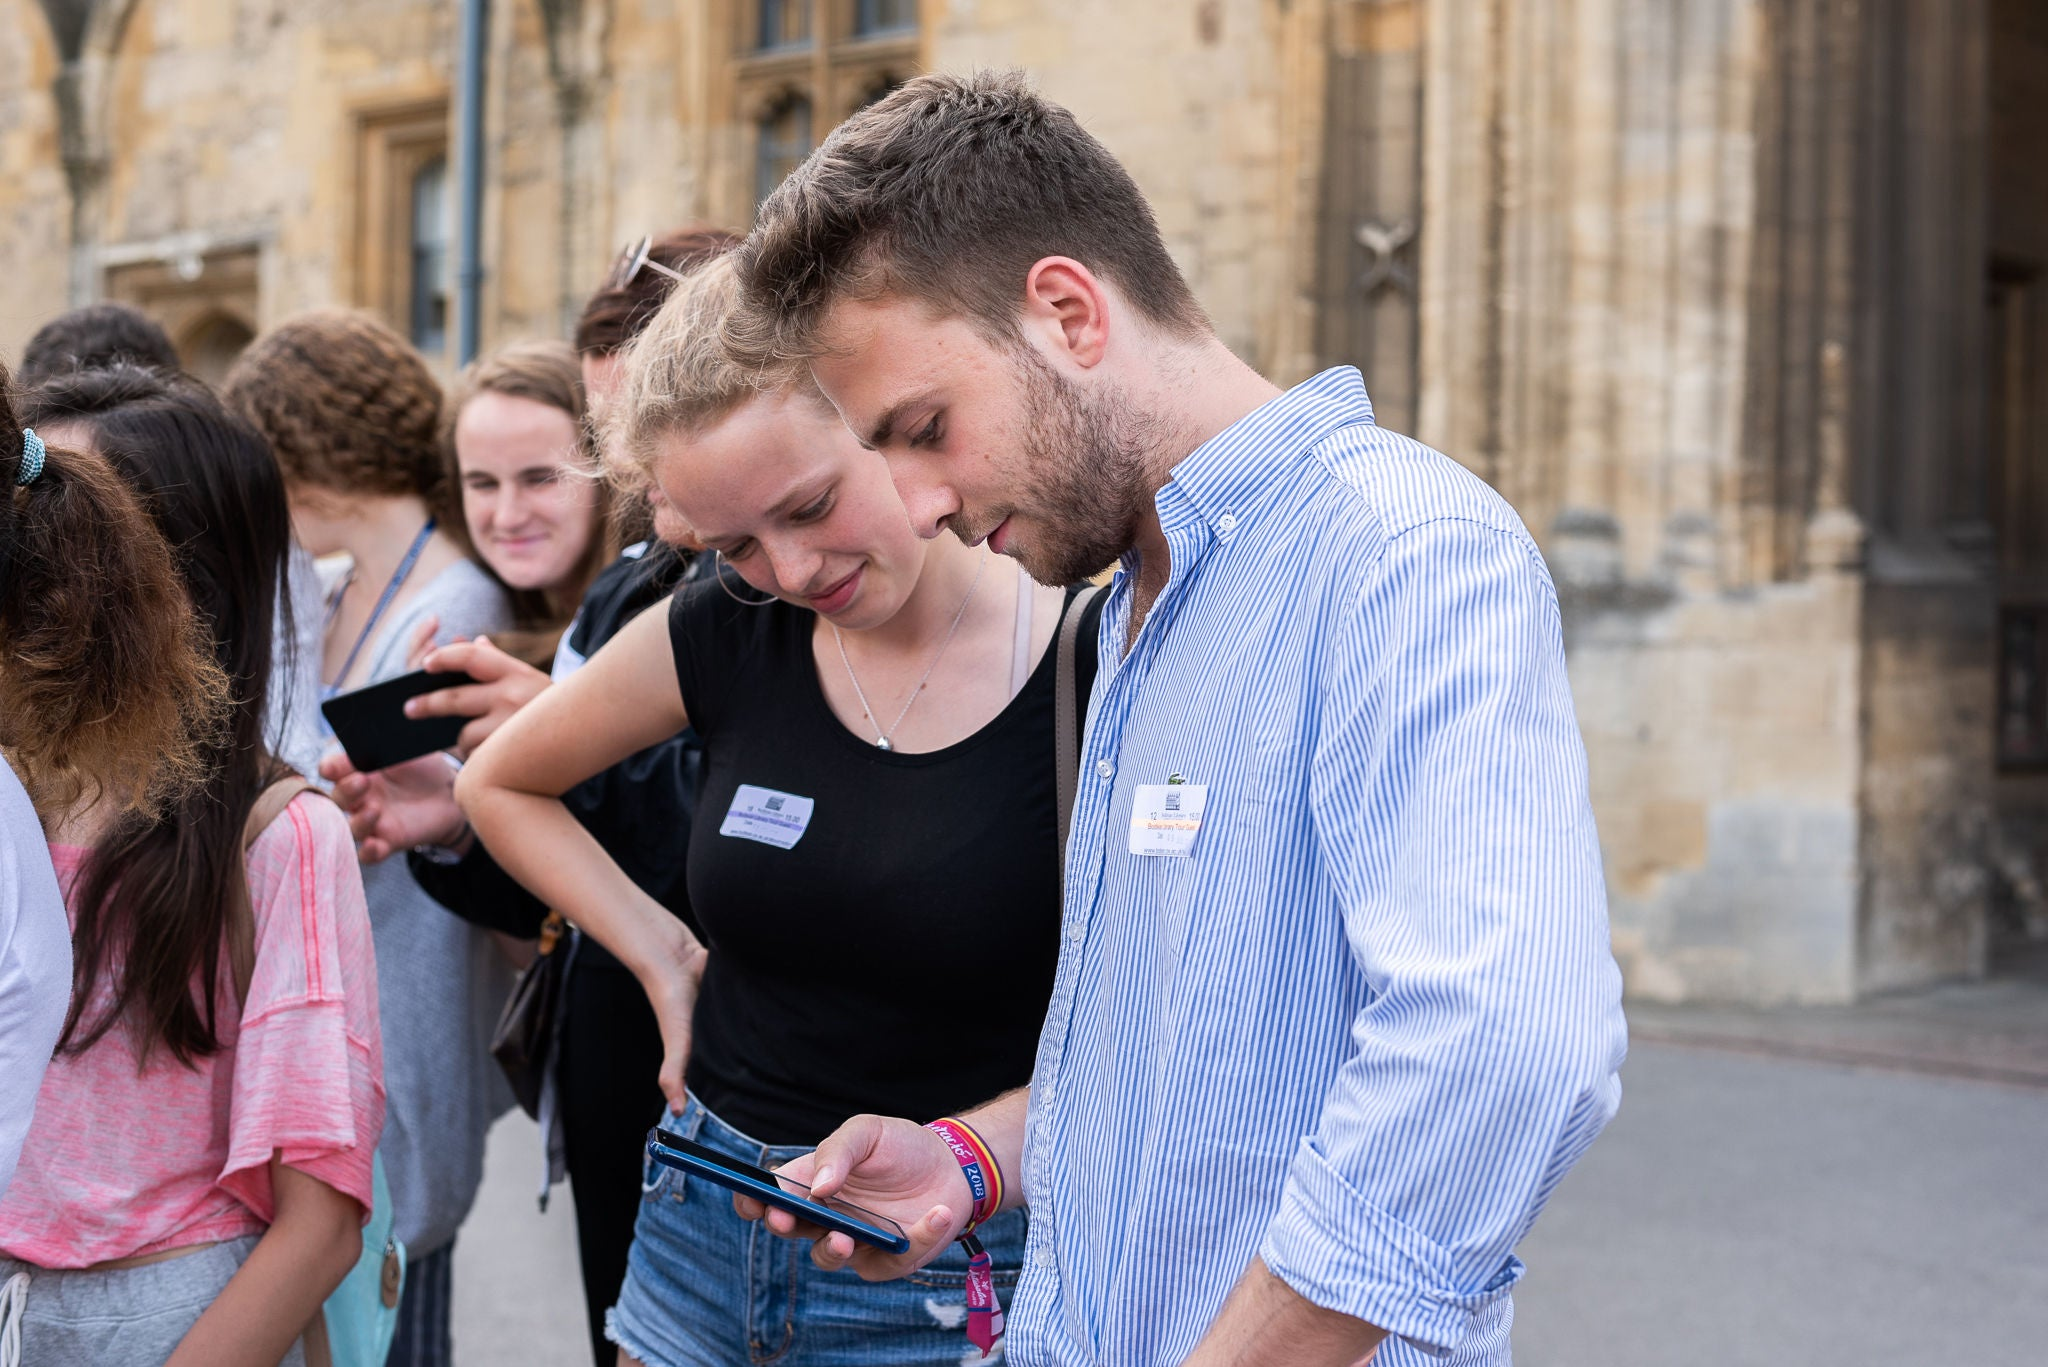 Summer school students on trip around Oxford University sites